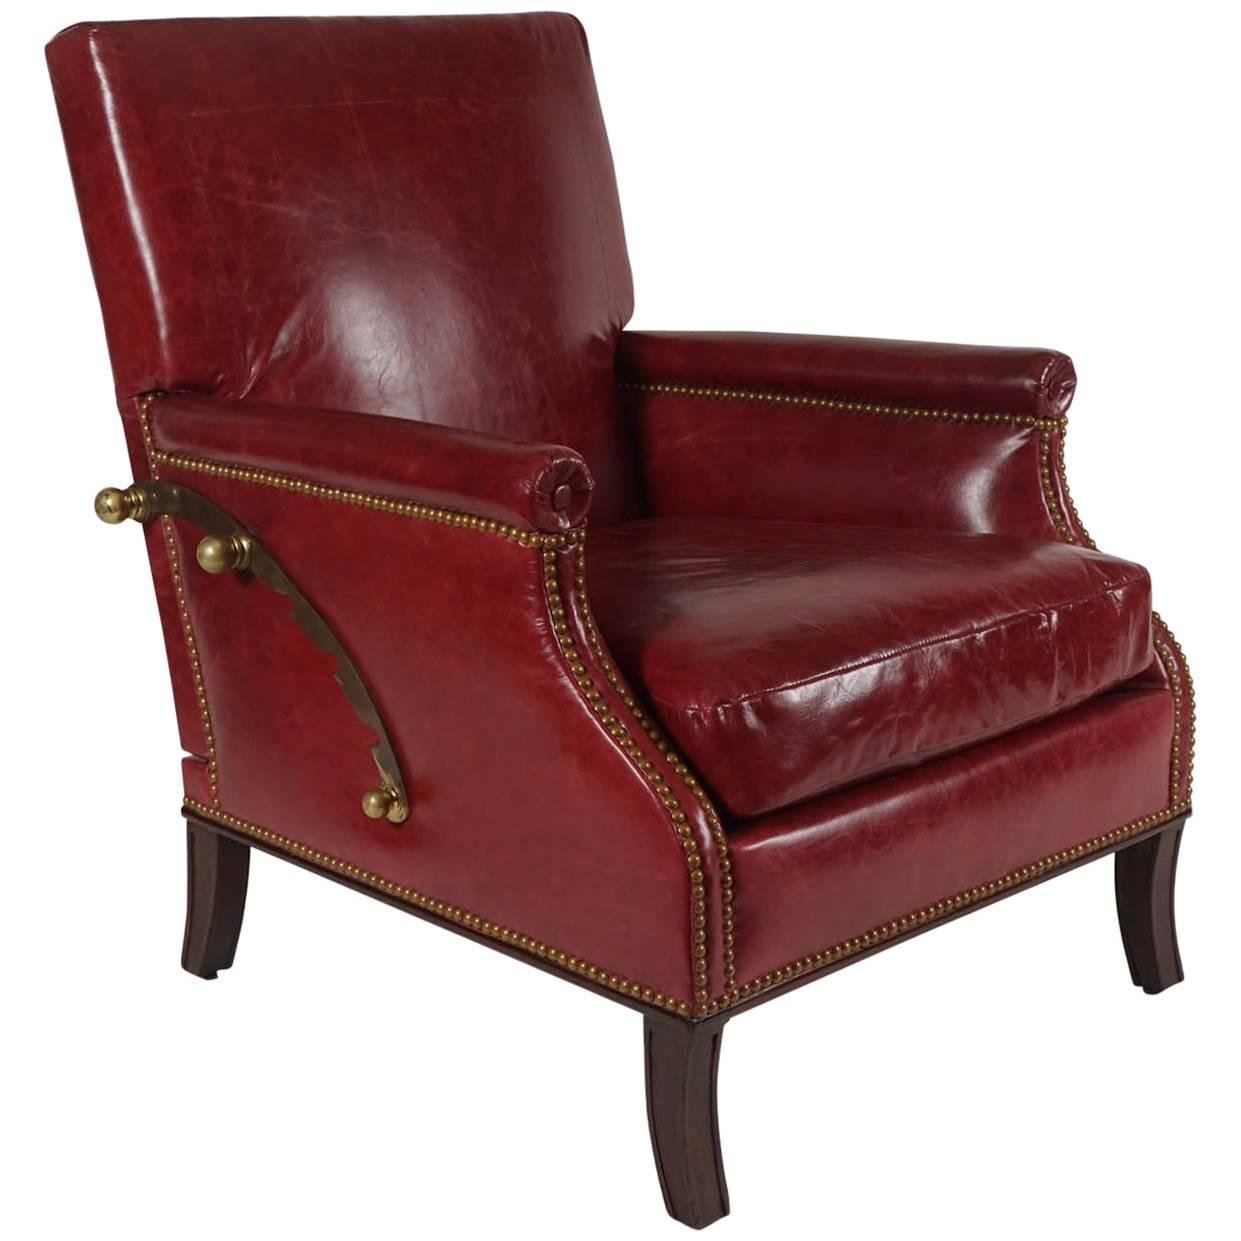 Rare Adjustable Reclining Leather Chair by Maurice Hirsch France c. 1950 For Sale at 1stdibs  sc 1 st  1stDibs & Rare Adjustable Reclining Leather Chair by Maurice Hirsch France ... islam-shia.org